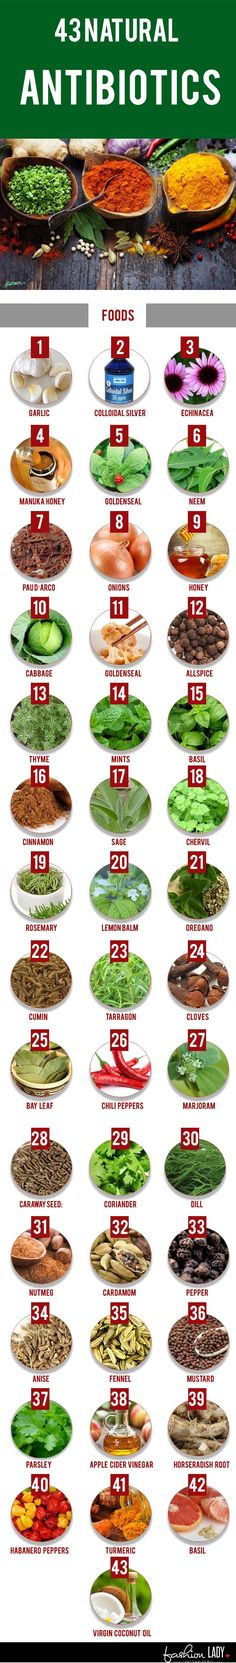 43 Natural Antibiotics